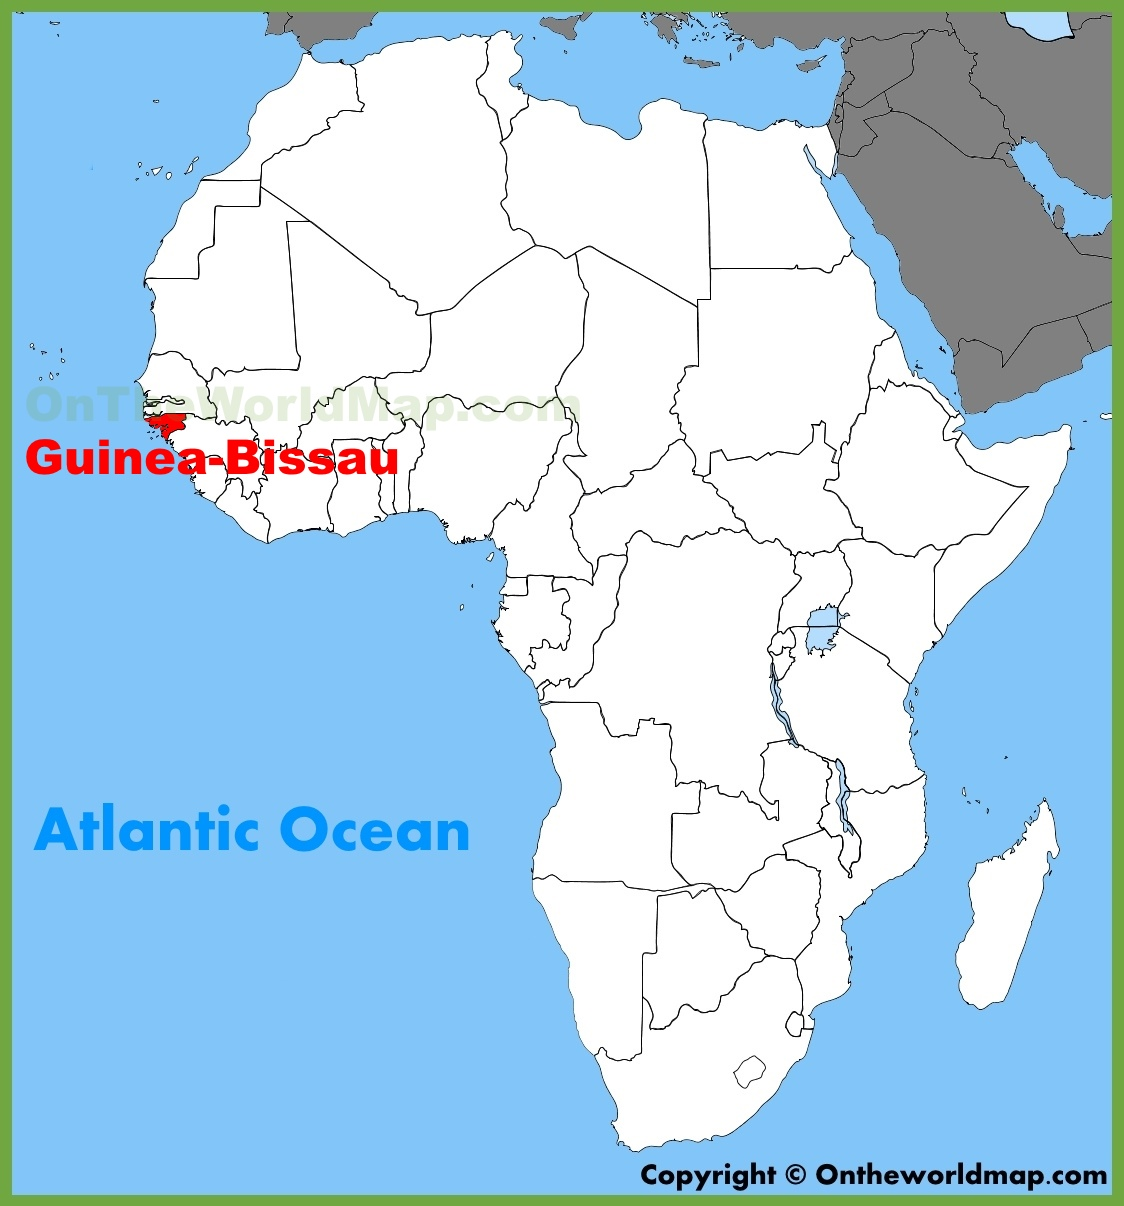 Guinea Bissau World Map Guinea Bissau location on the Africa map